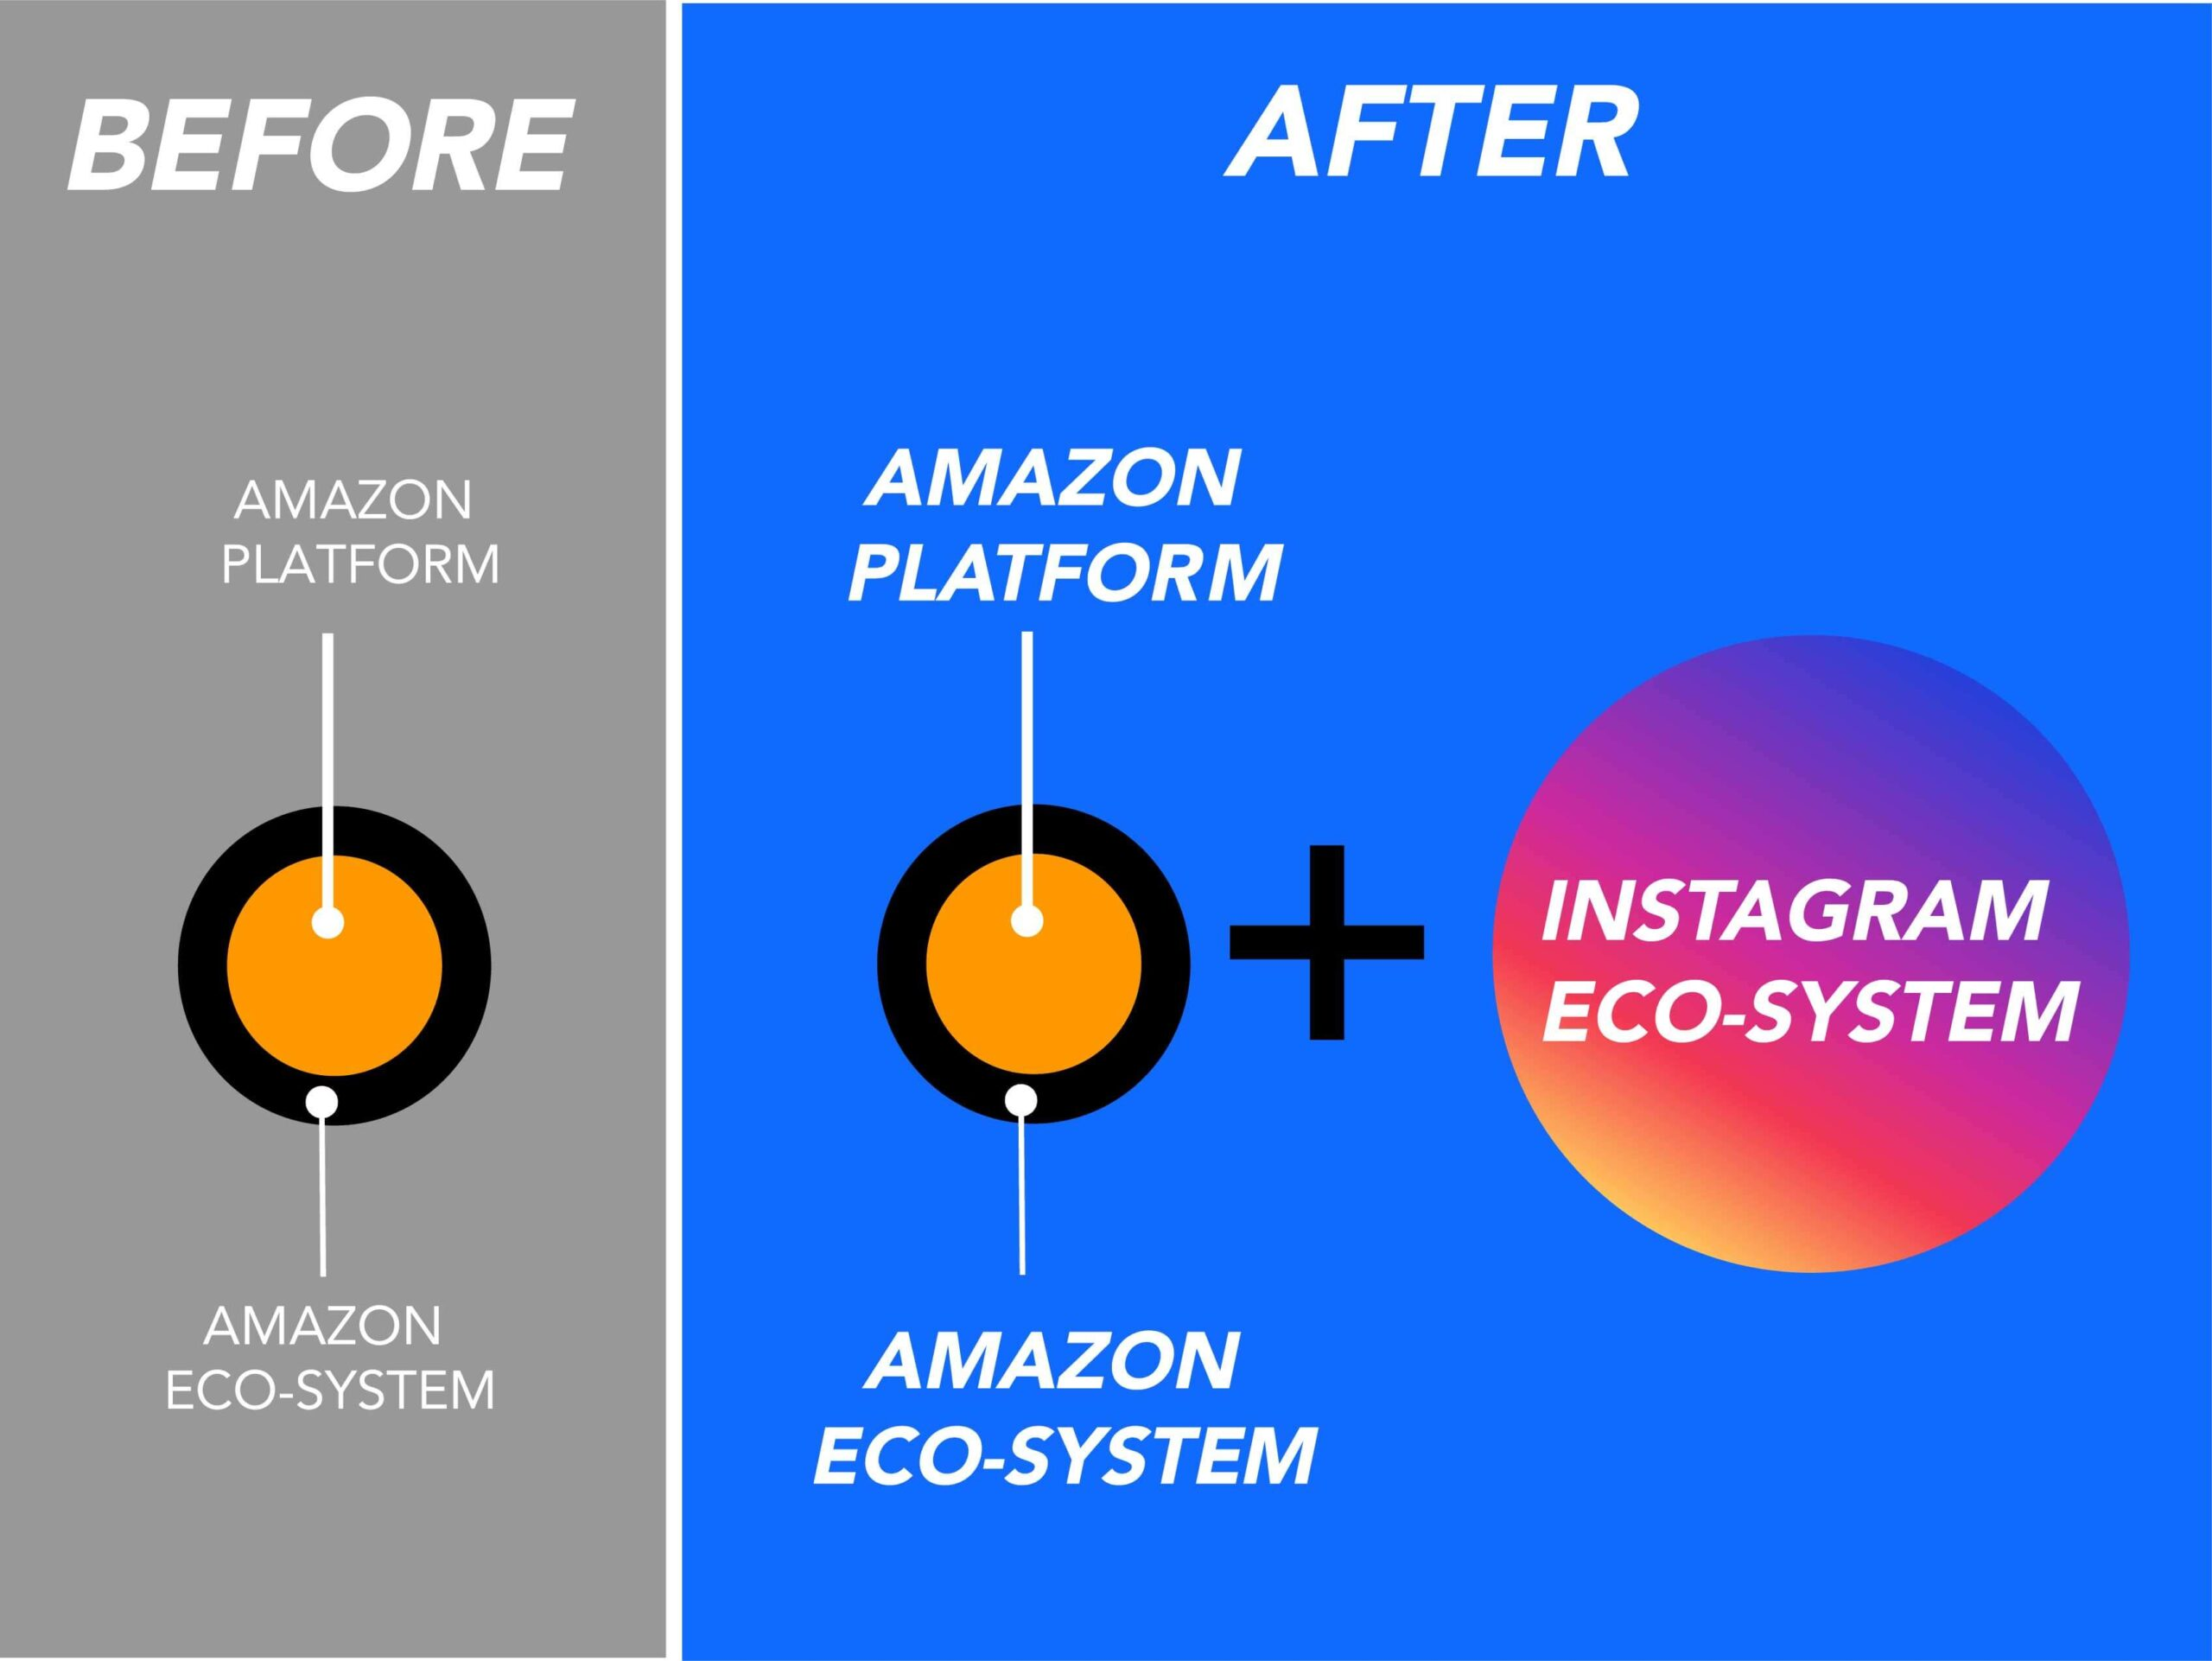 influencer content & strategy before and after